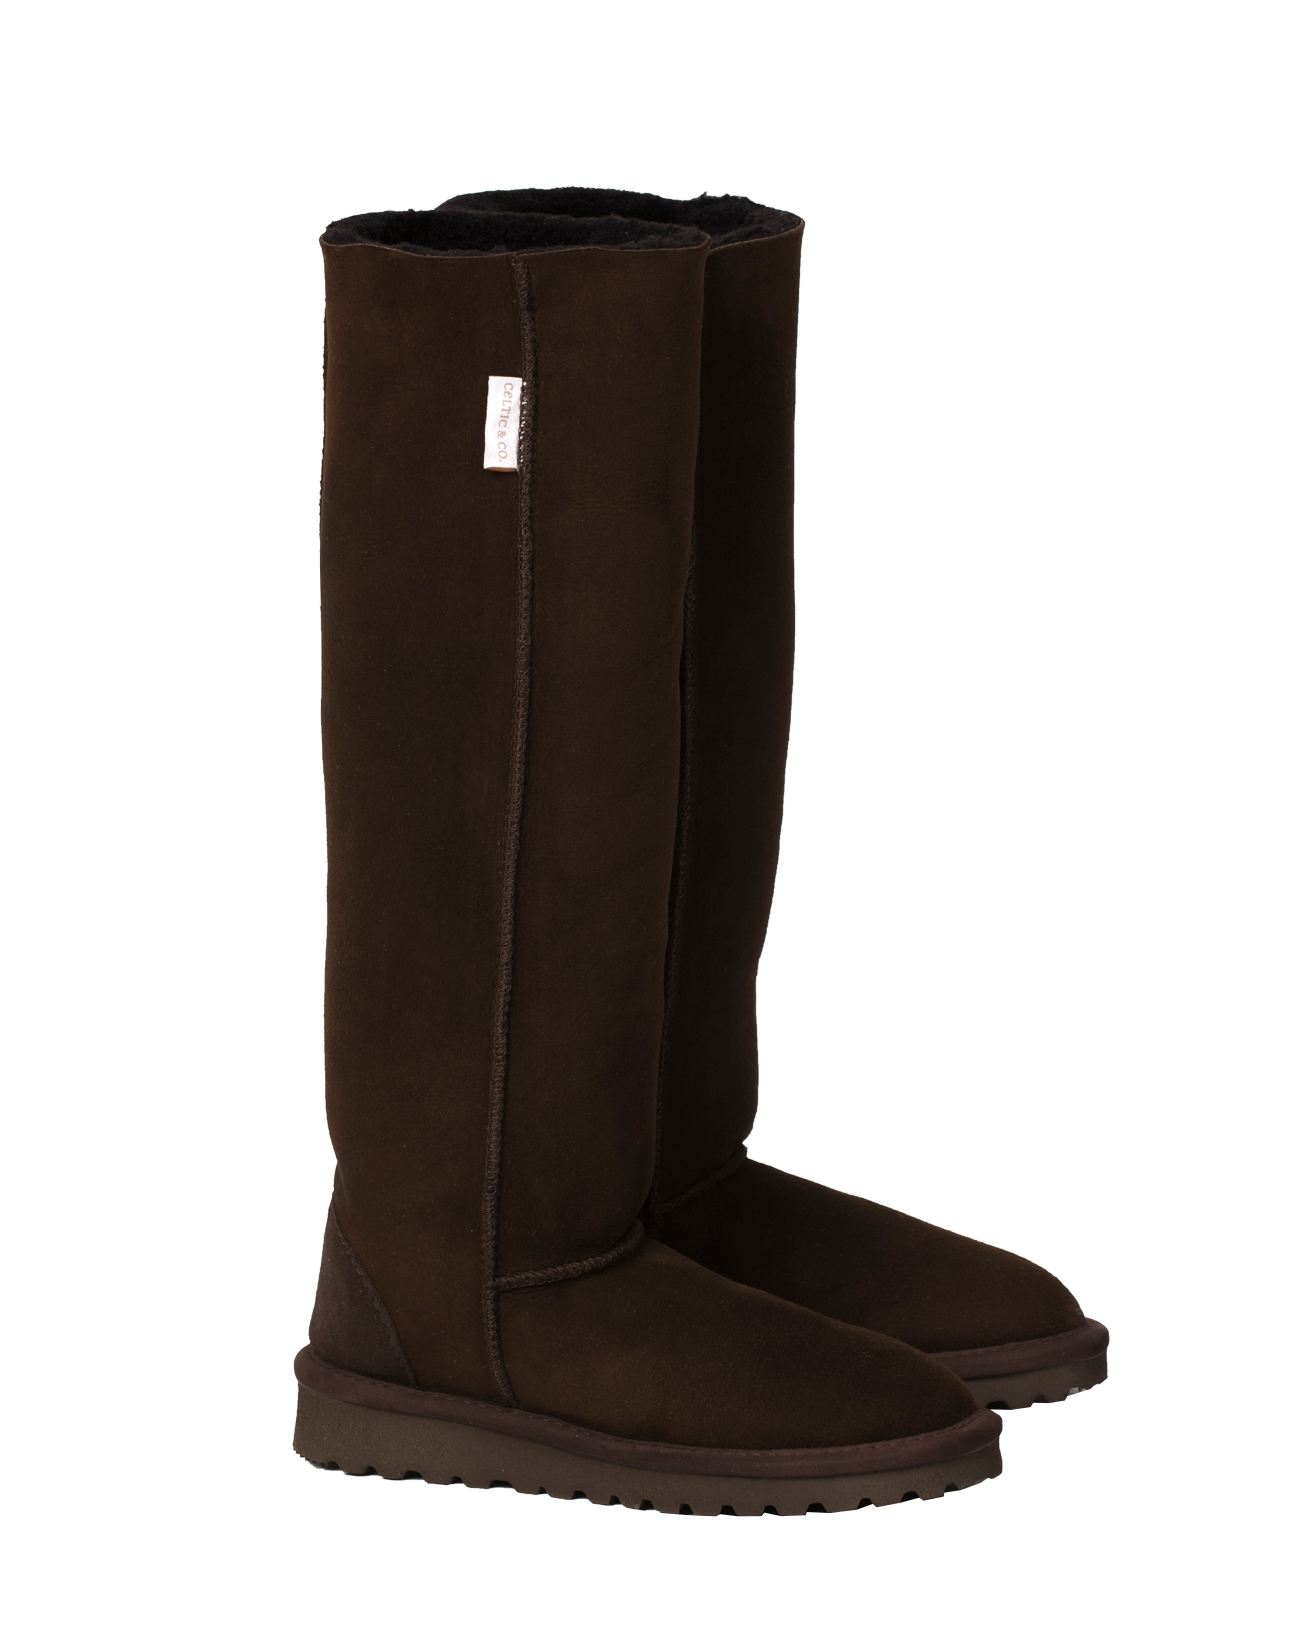 6604_celt knee boot_mocca_pair.jpg